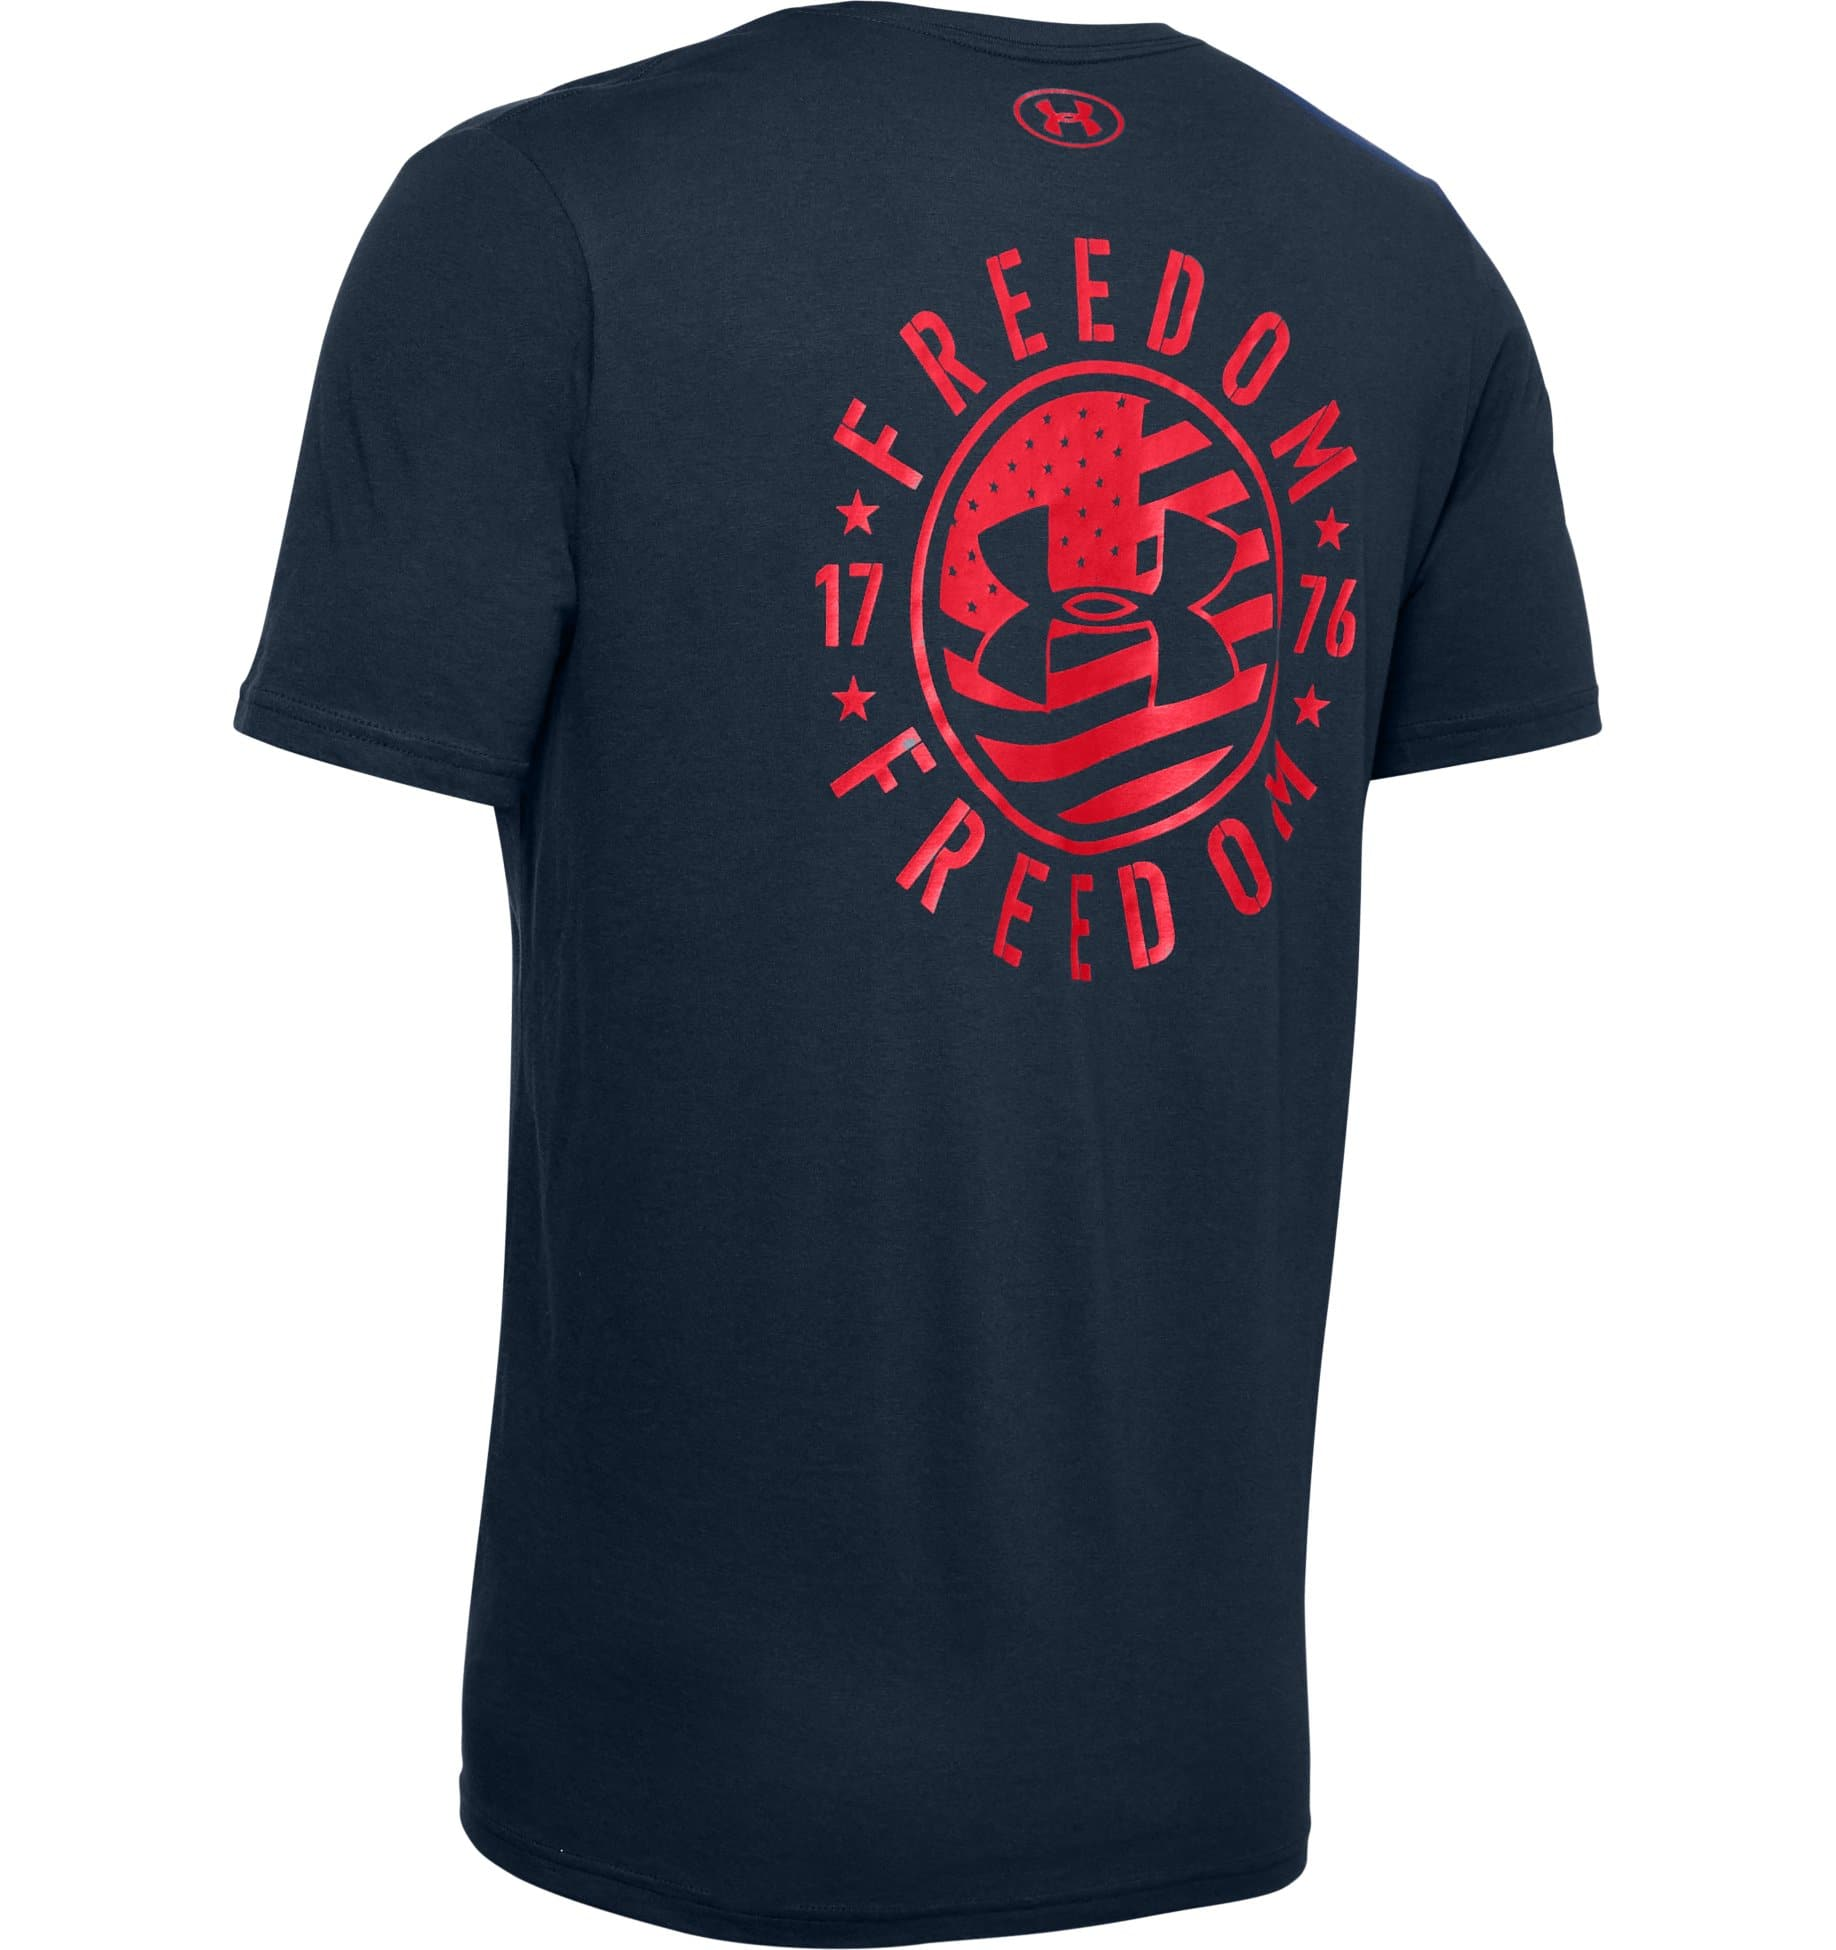 Under Armour Men's Graphic Tees (Freedom Tried & True or Texas Flag)